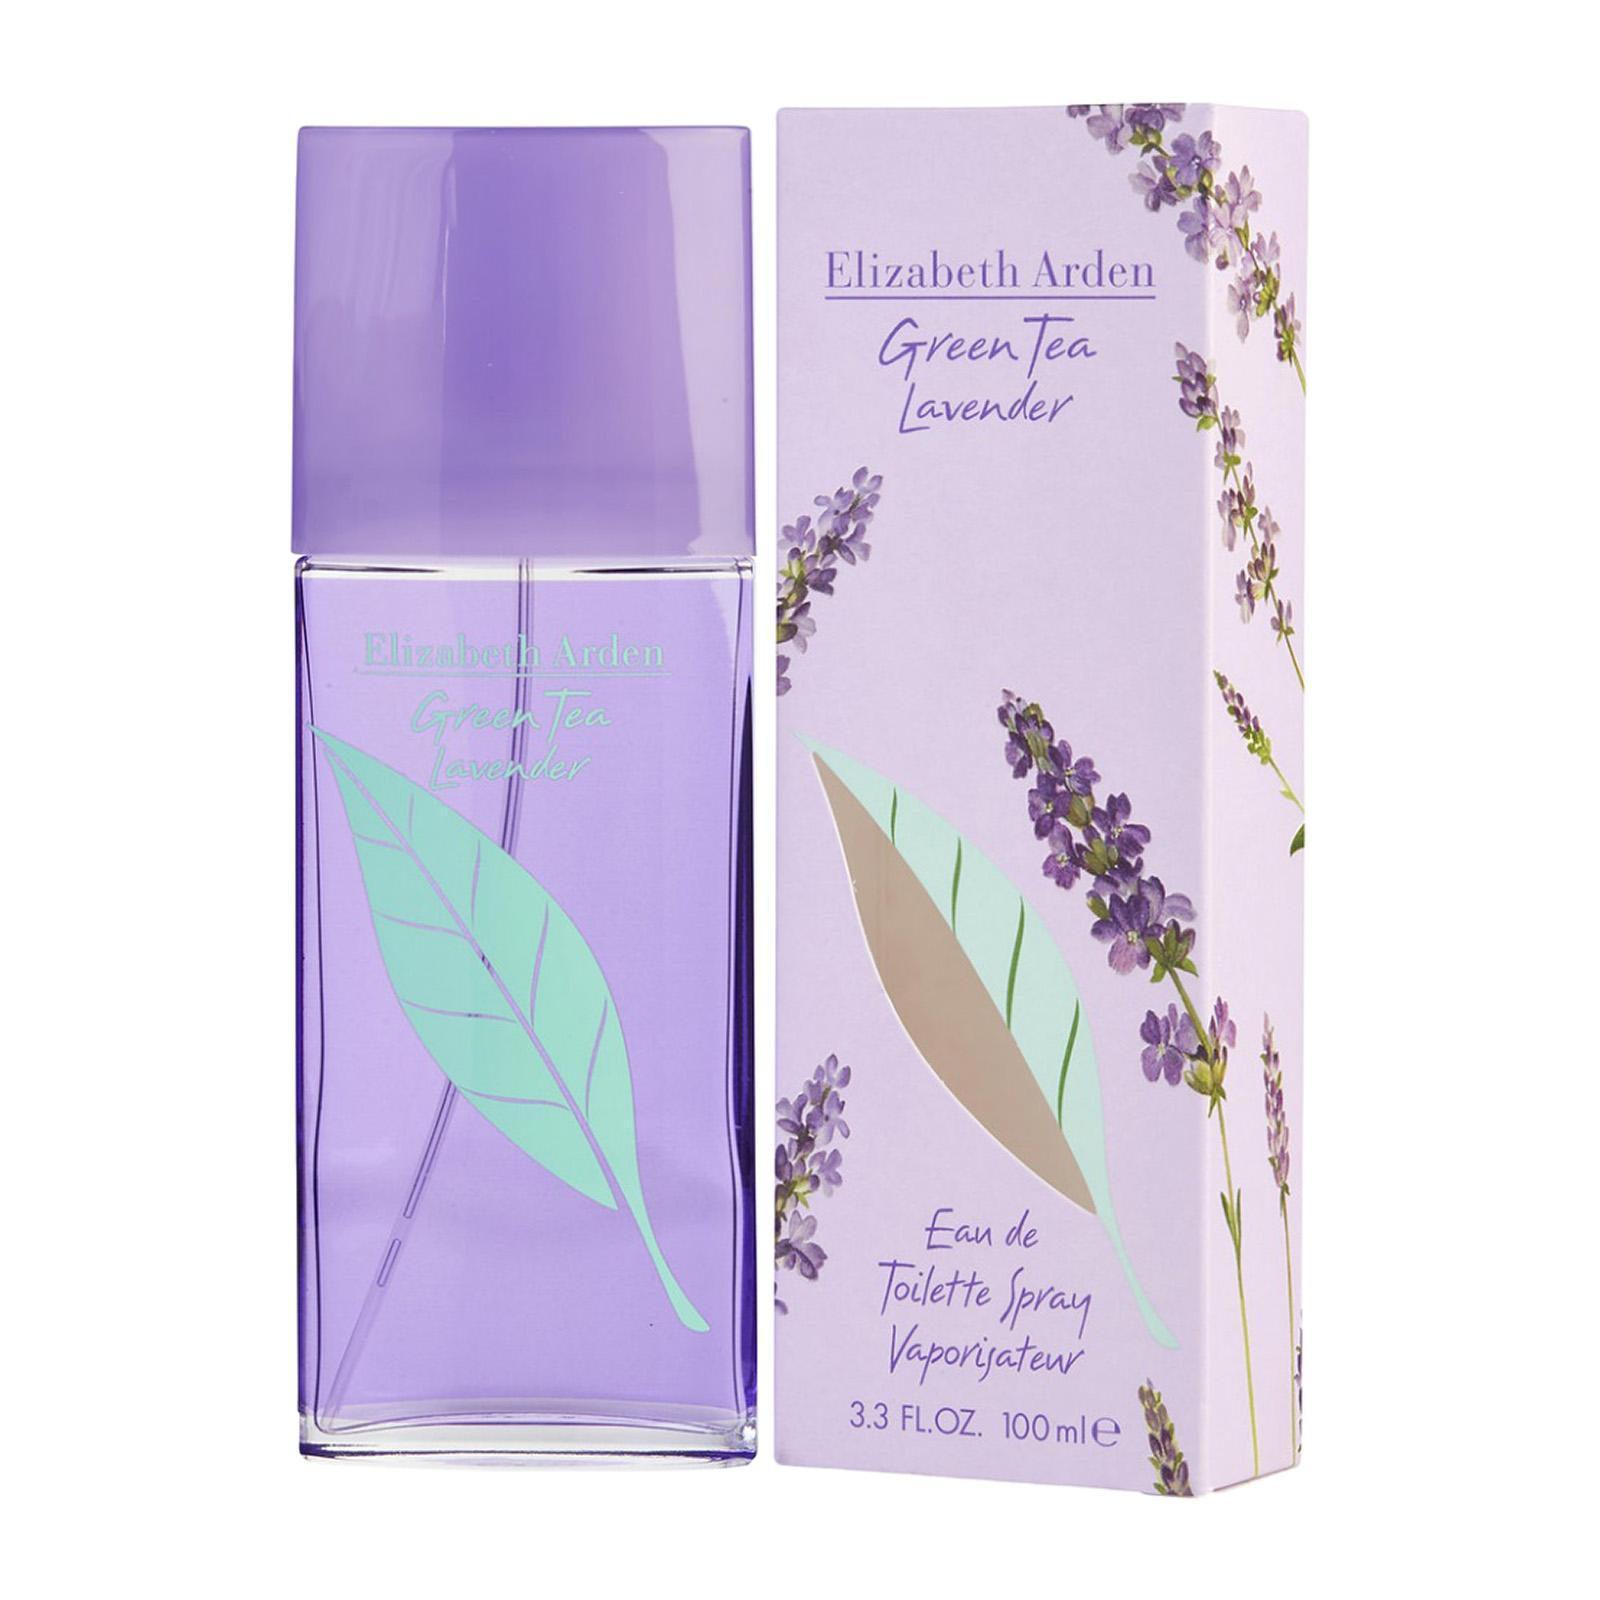 Elizabeth Arden Green Tea Lavender Eau De Toilette Perfume Fragrance SP - By BEAULUXLAB